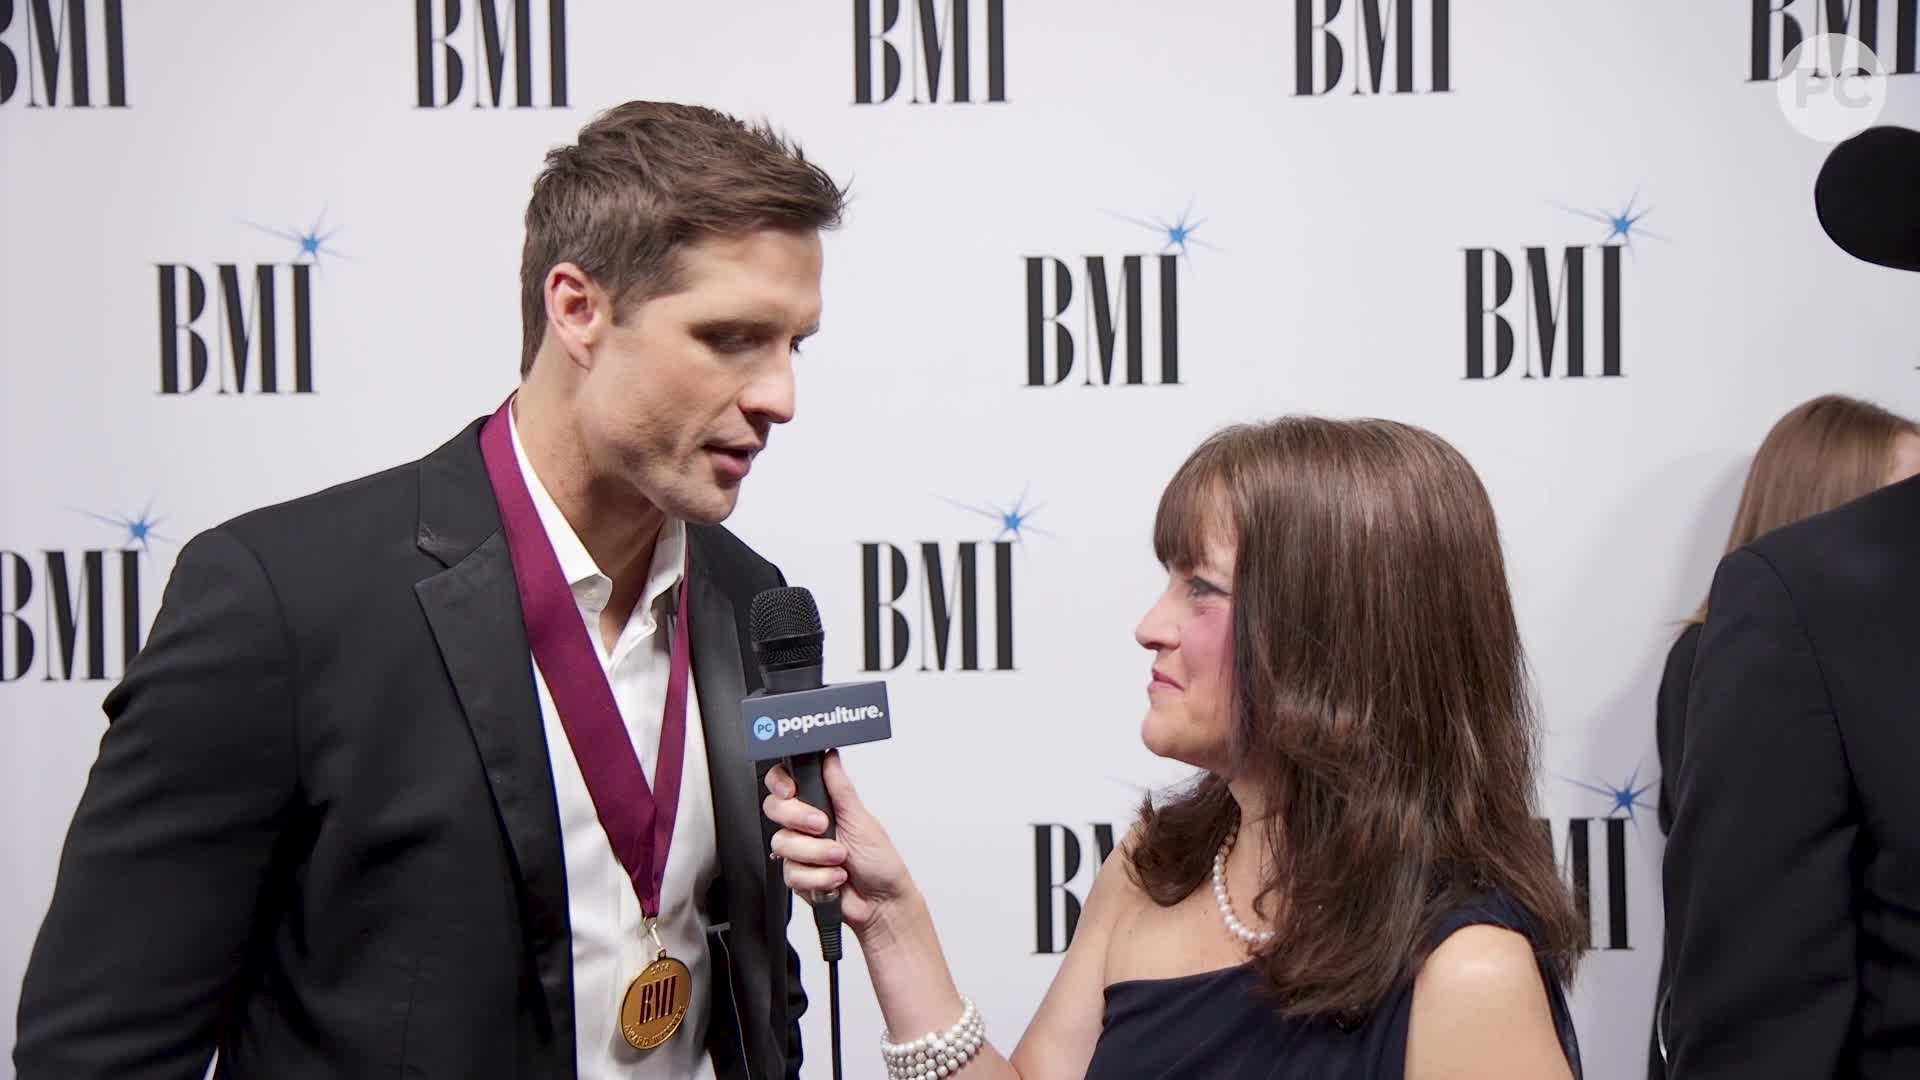 Walker Hayes - 2018 BMI Awards screen capture